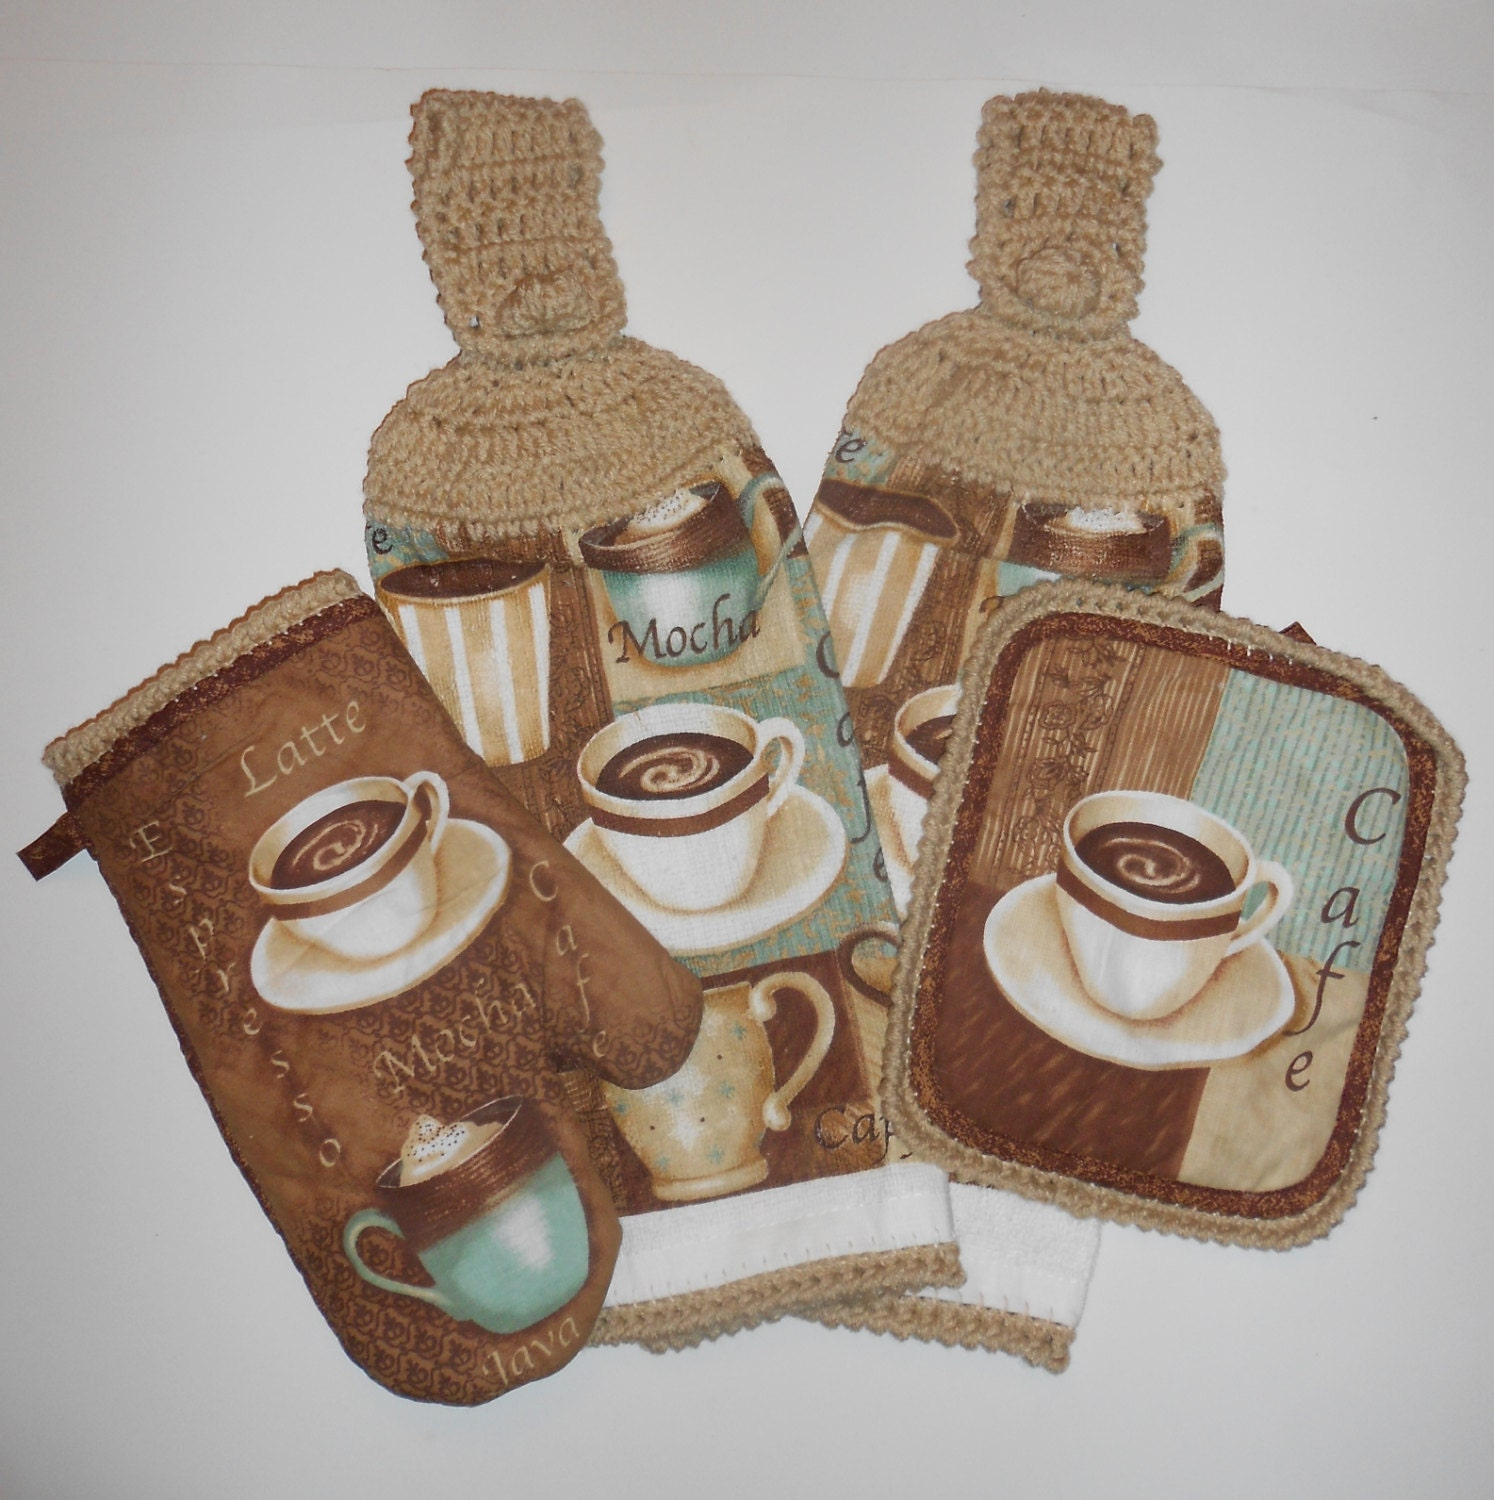 Coffee Espresso Latte Cafe Ivory Brown Kitchen Curtains: Hanging Kitchen Towels Pot Holder Oven Mitt Crochet Cafe